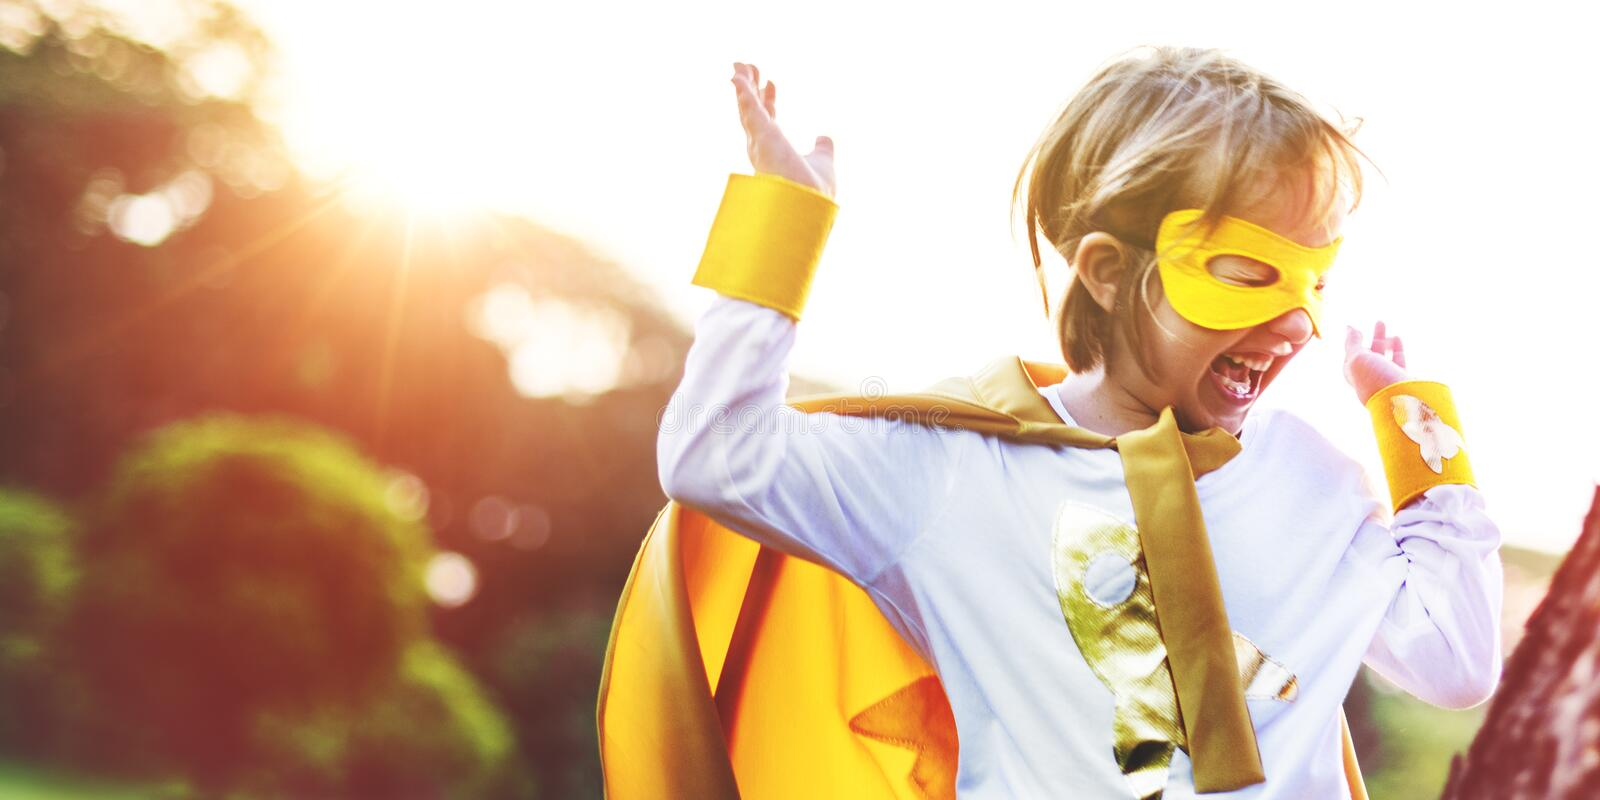 Superhero Kid Playful Happiness Leisure Activity Concept royalty free stock photography